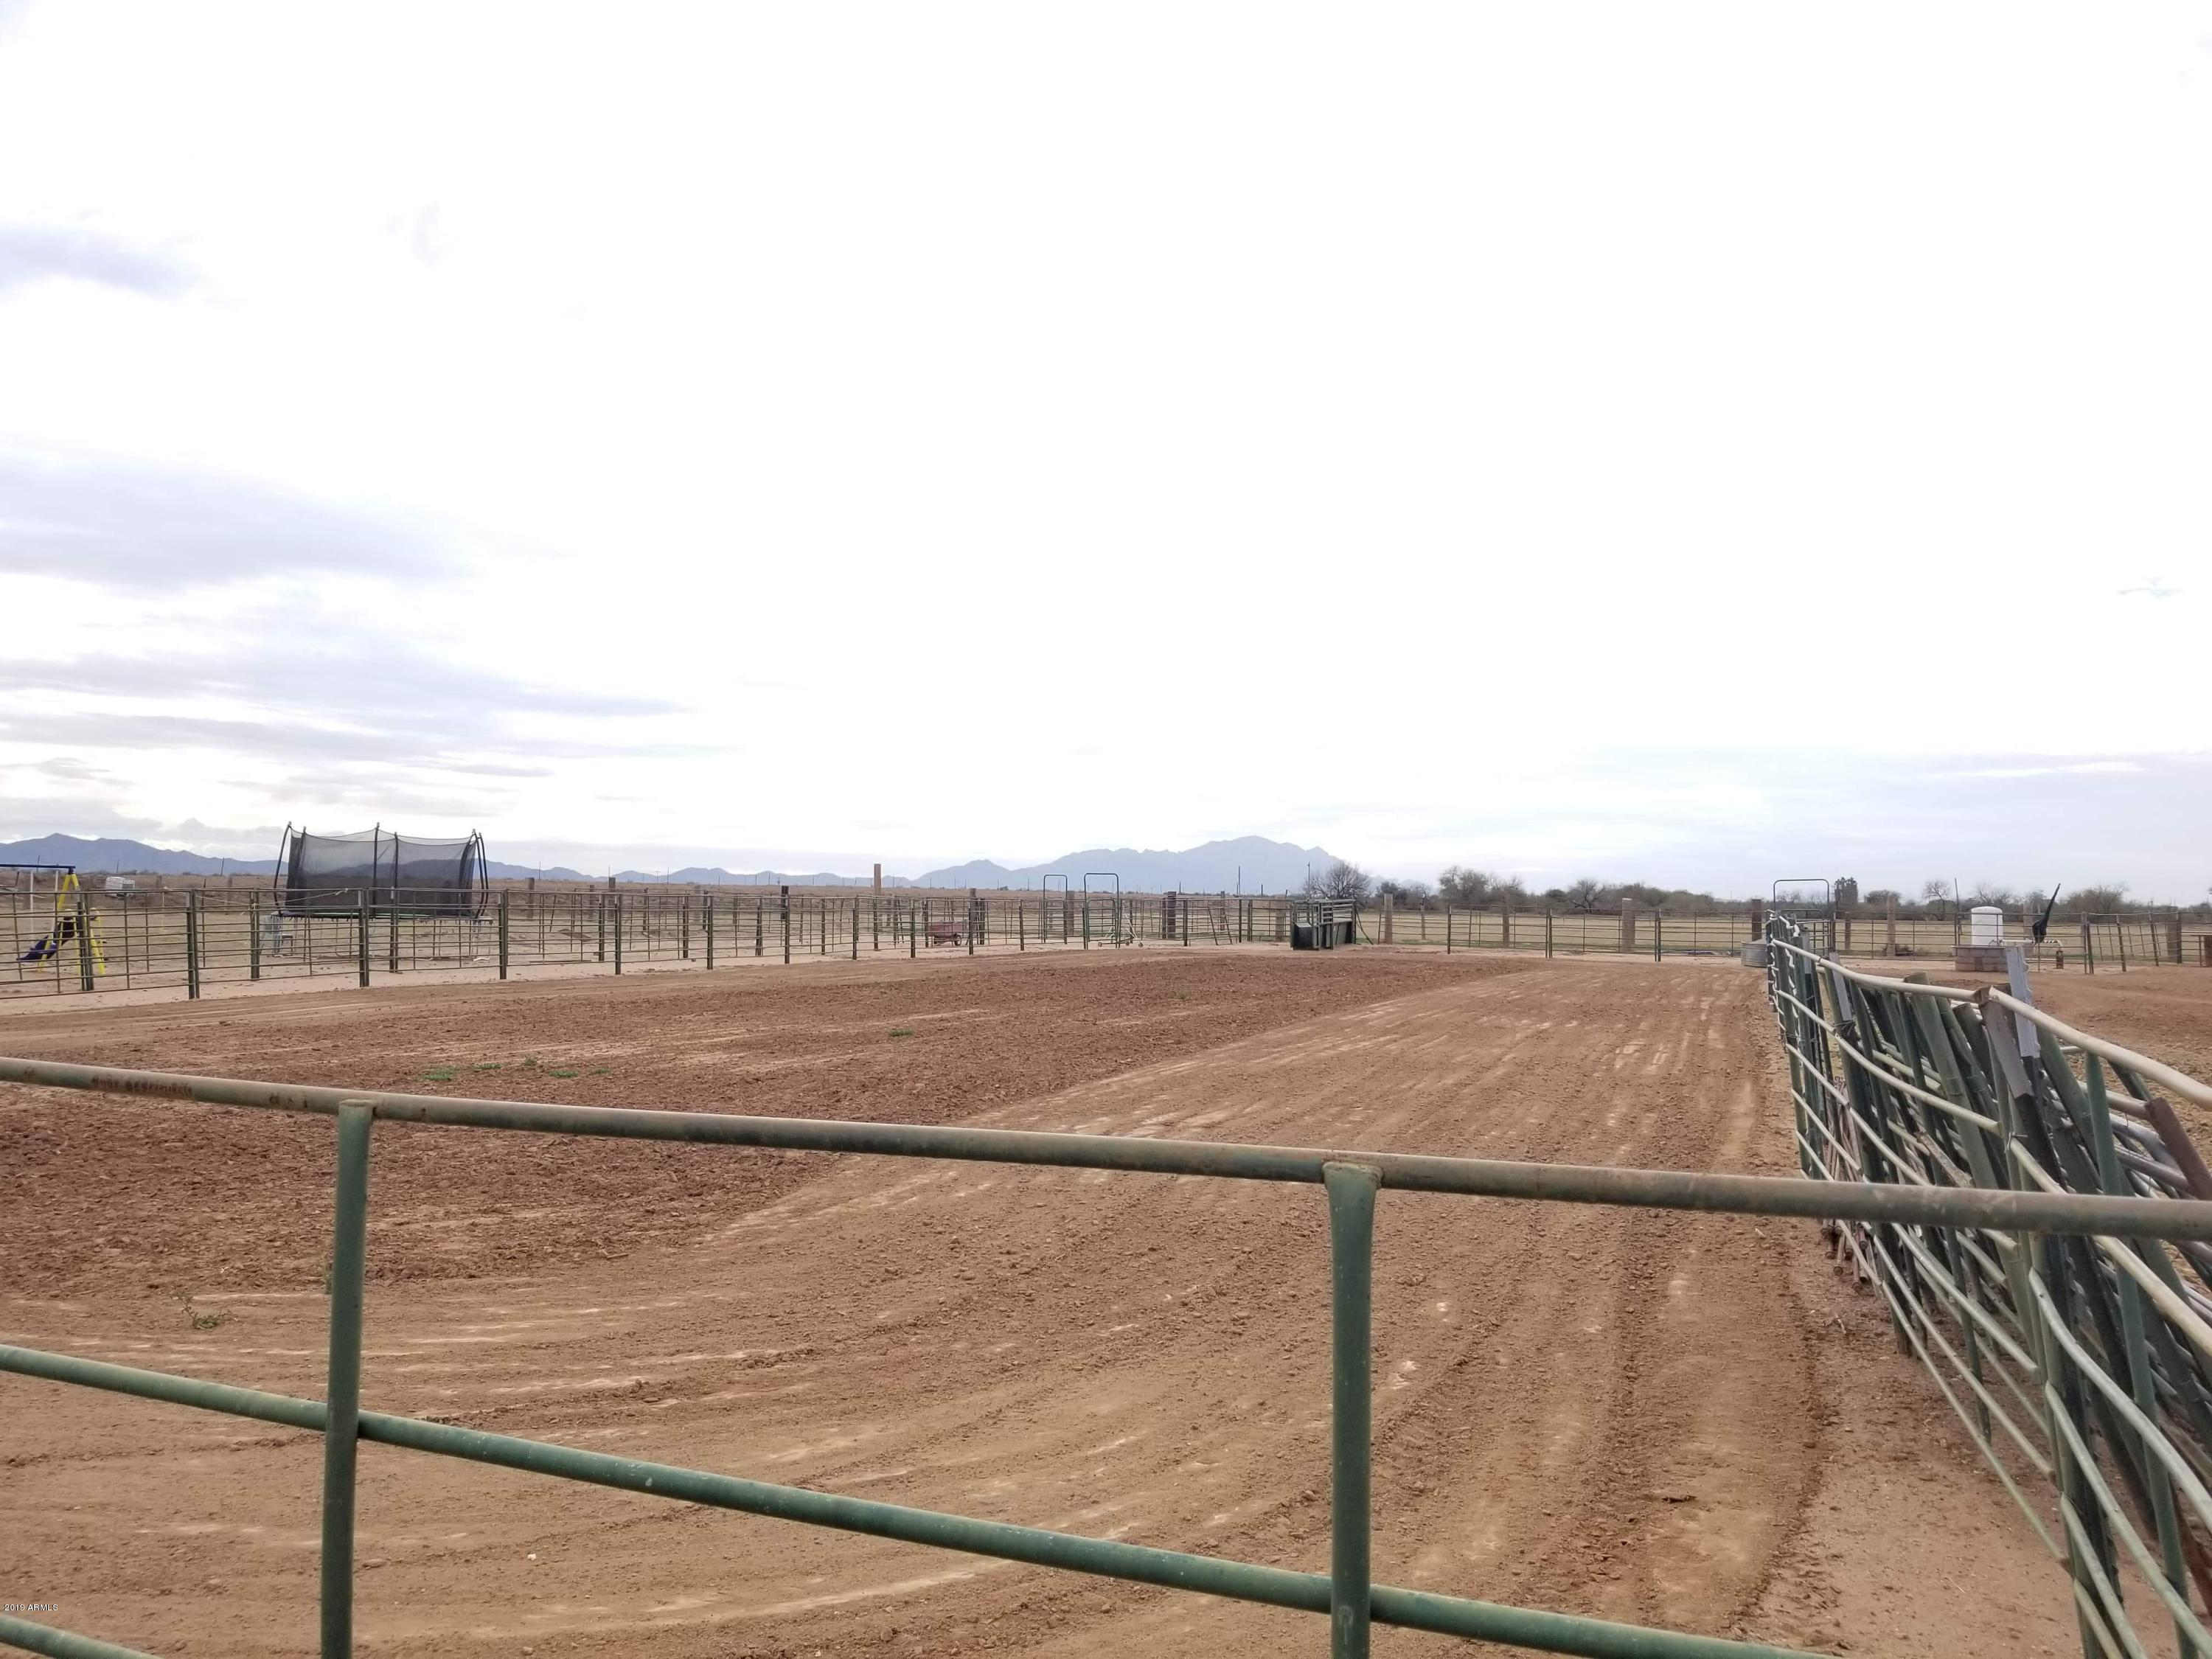 MLS 5886988 9937 E DELTON Drive, Coolidge, AZ 85128 Coolidge AZ Equestrian